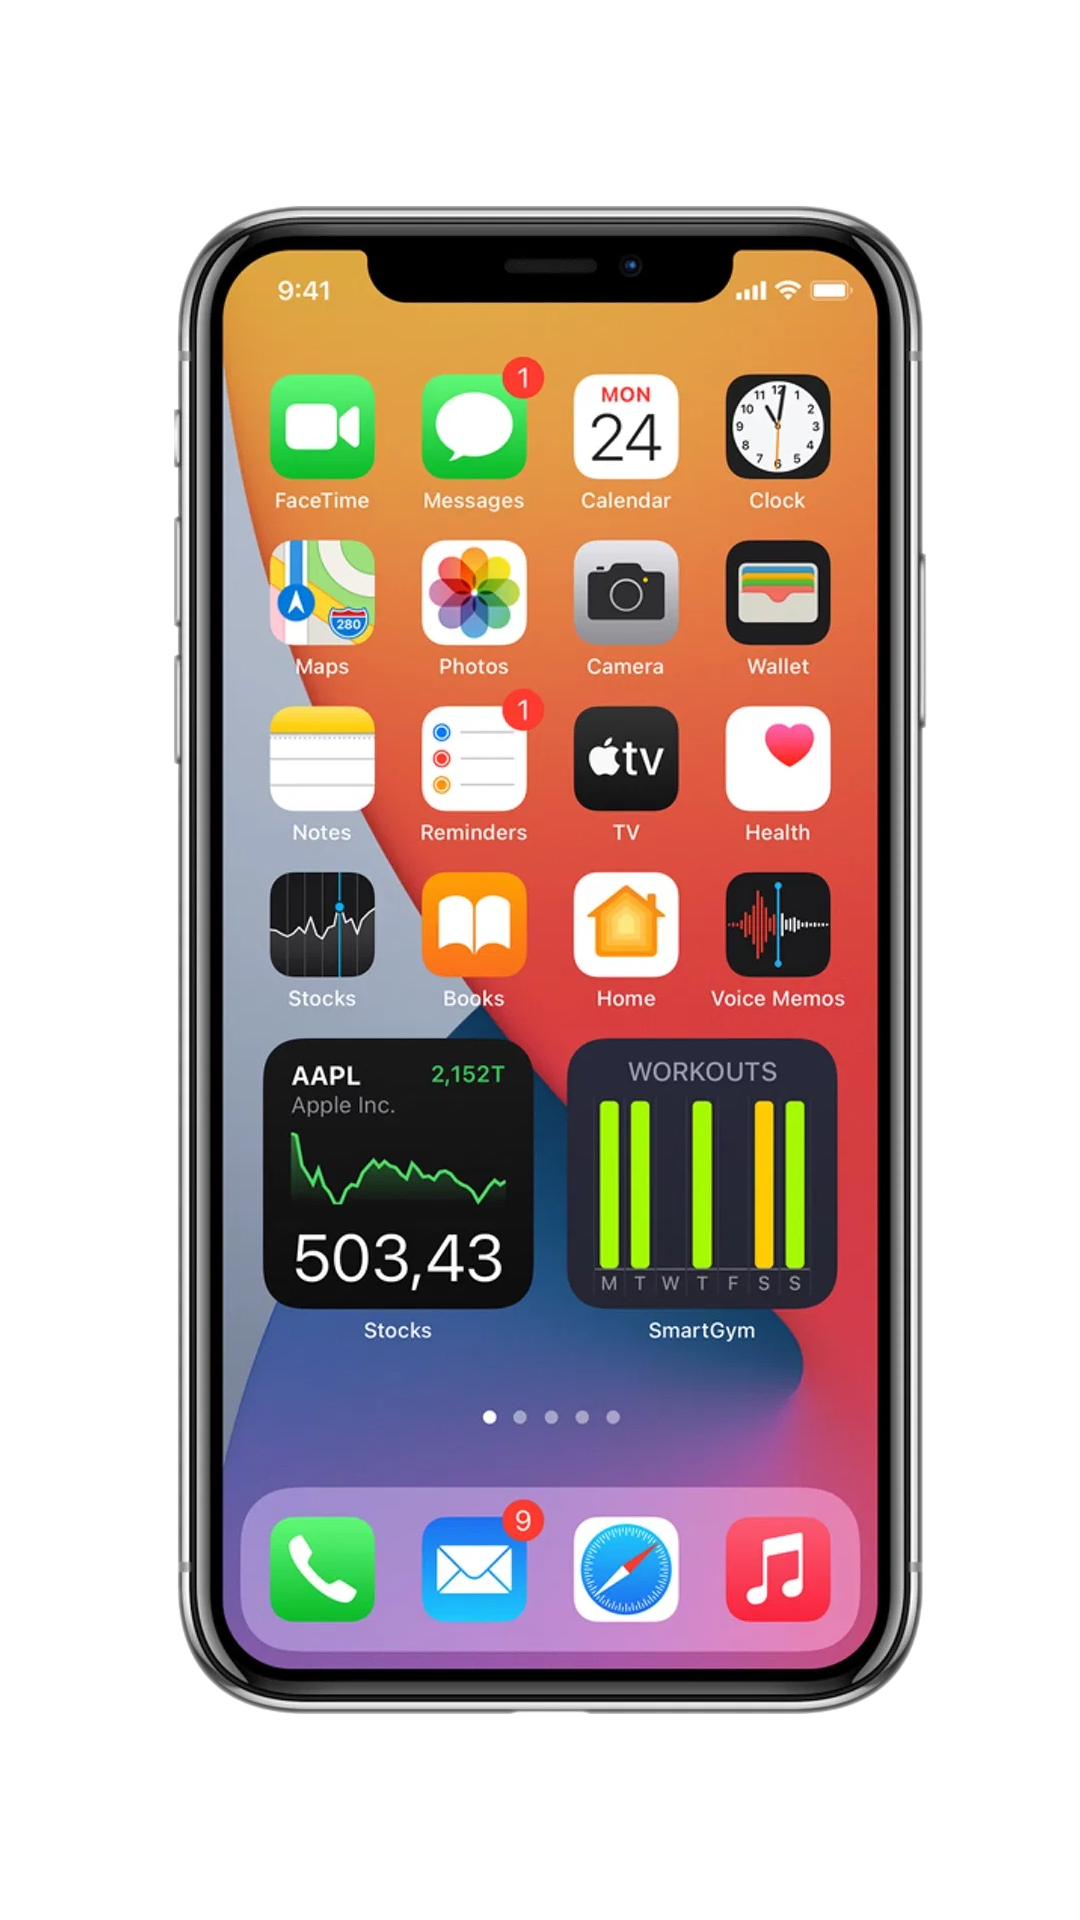 An iPhone X displaying the Home Screen of iOS 14, featuring an arrangement of apps and widgets.